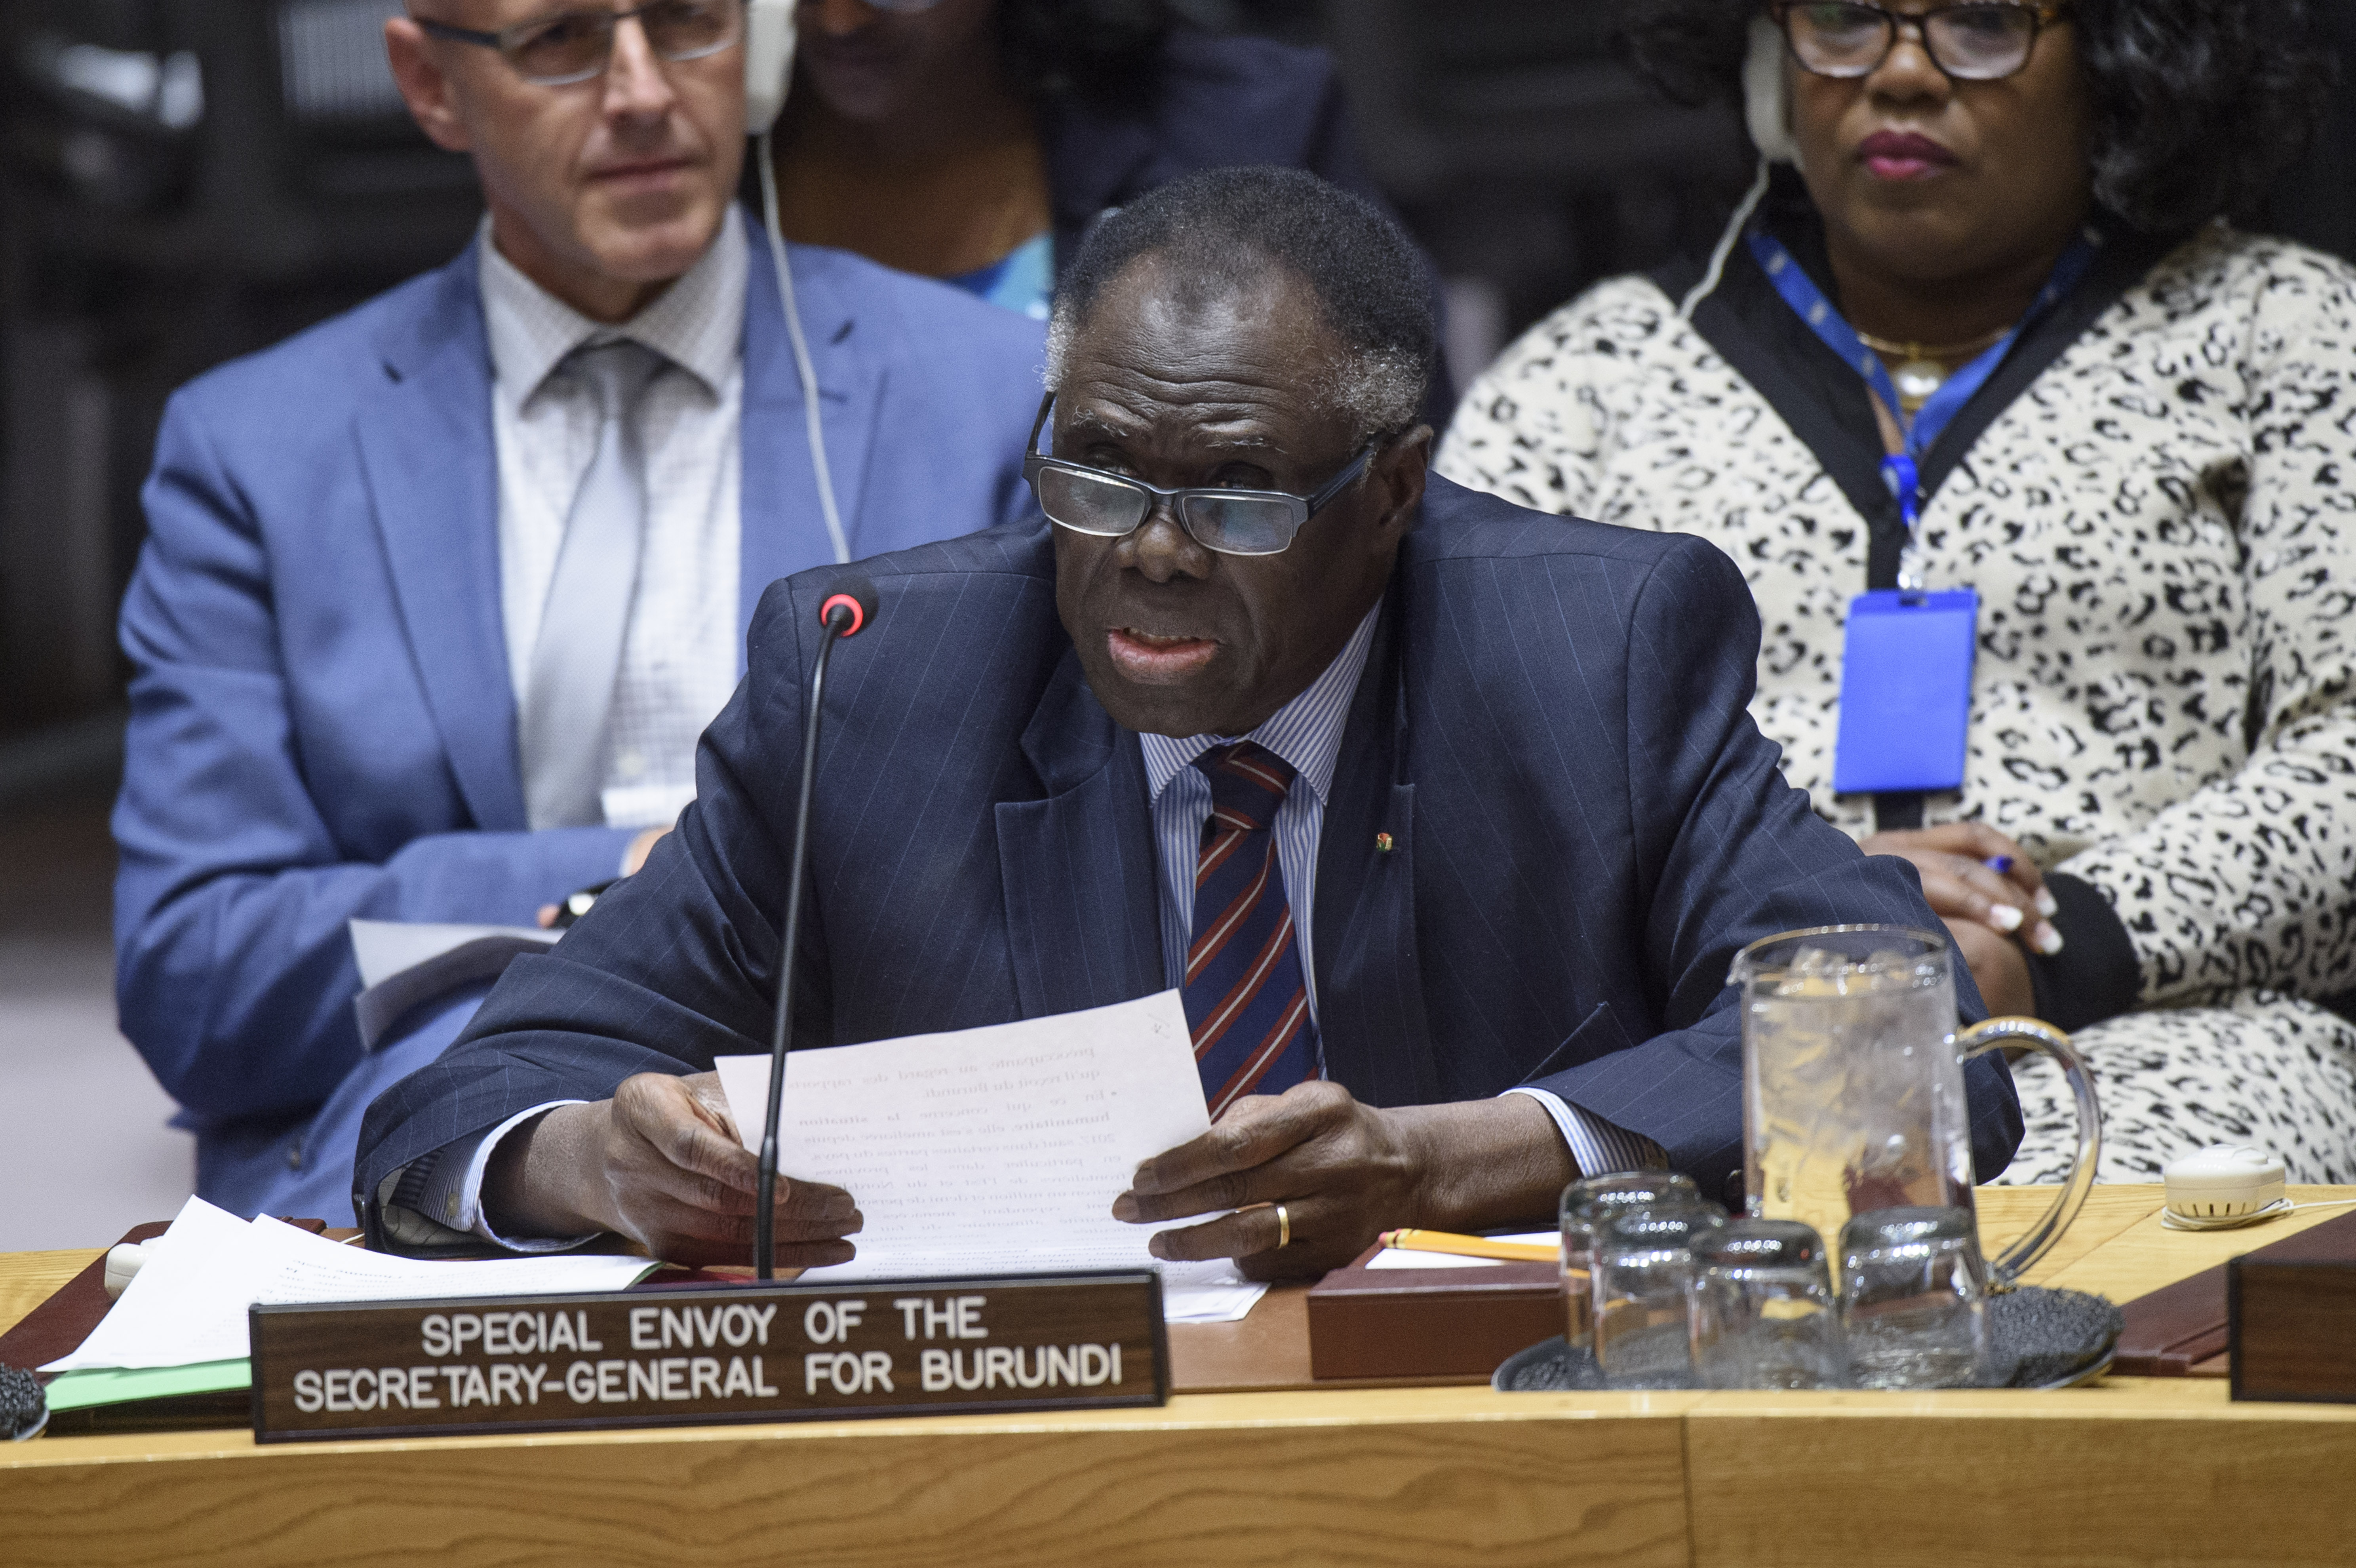 Michel Kafando, Special Envoy of the Secretary‑General for Burundi, briefs the Security Council on the situation in Burundi.